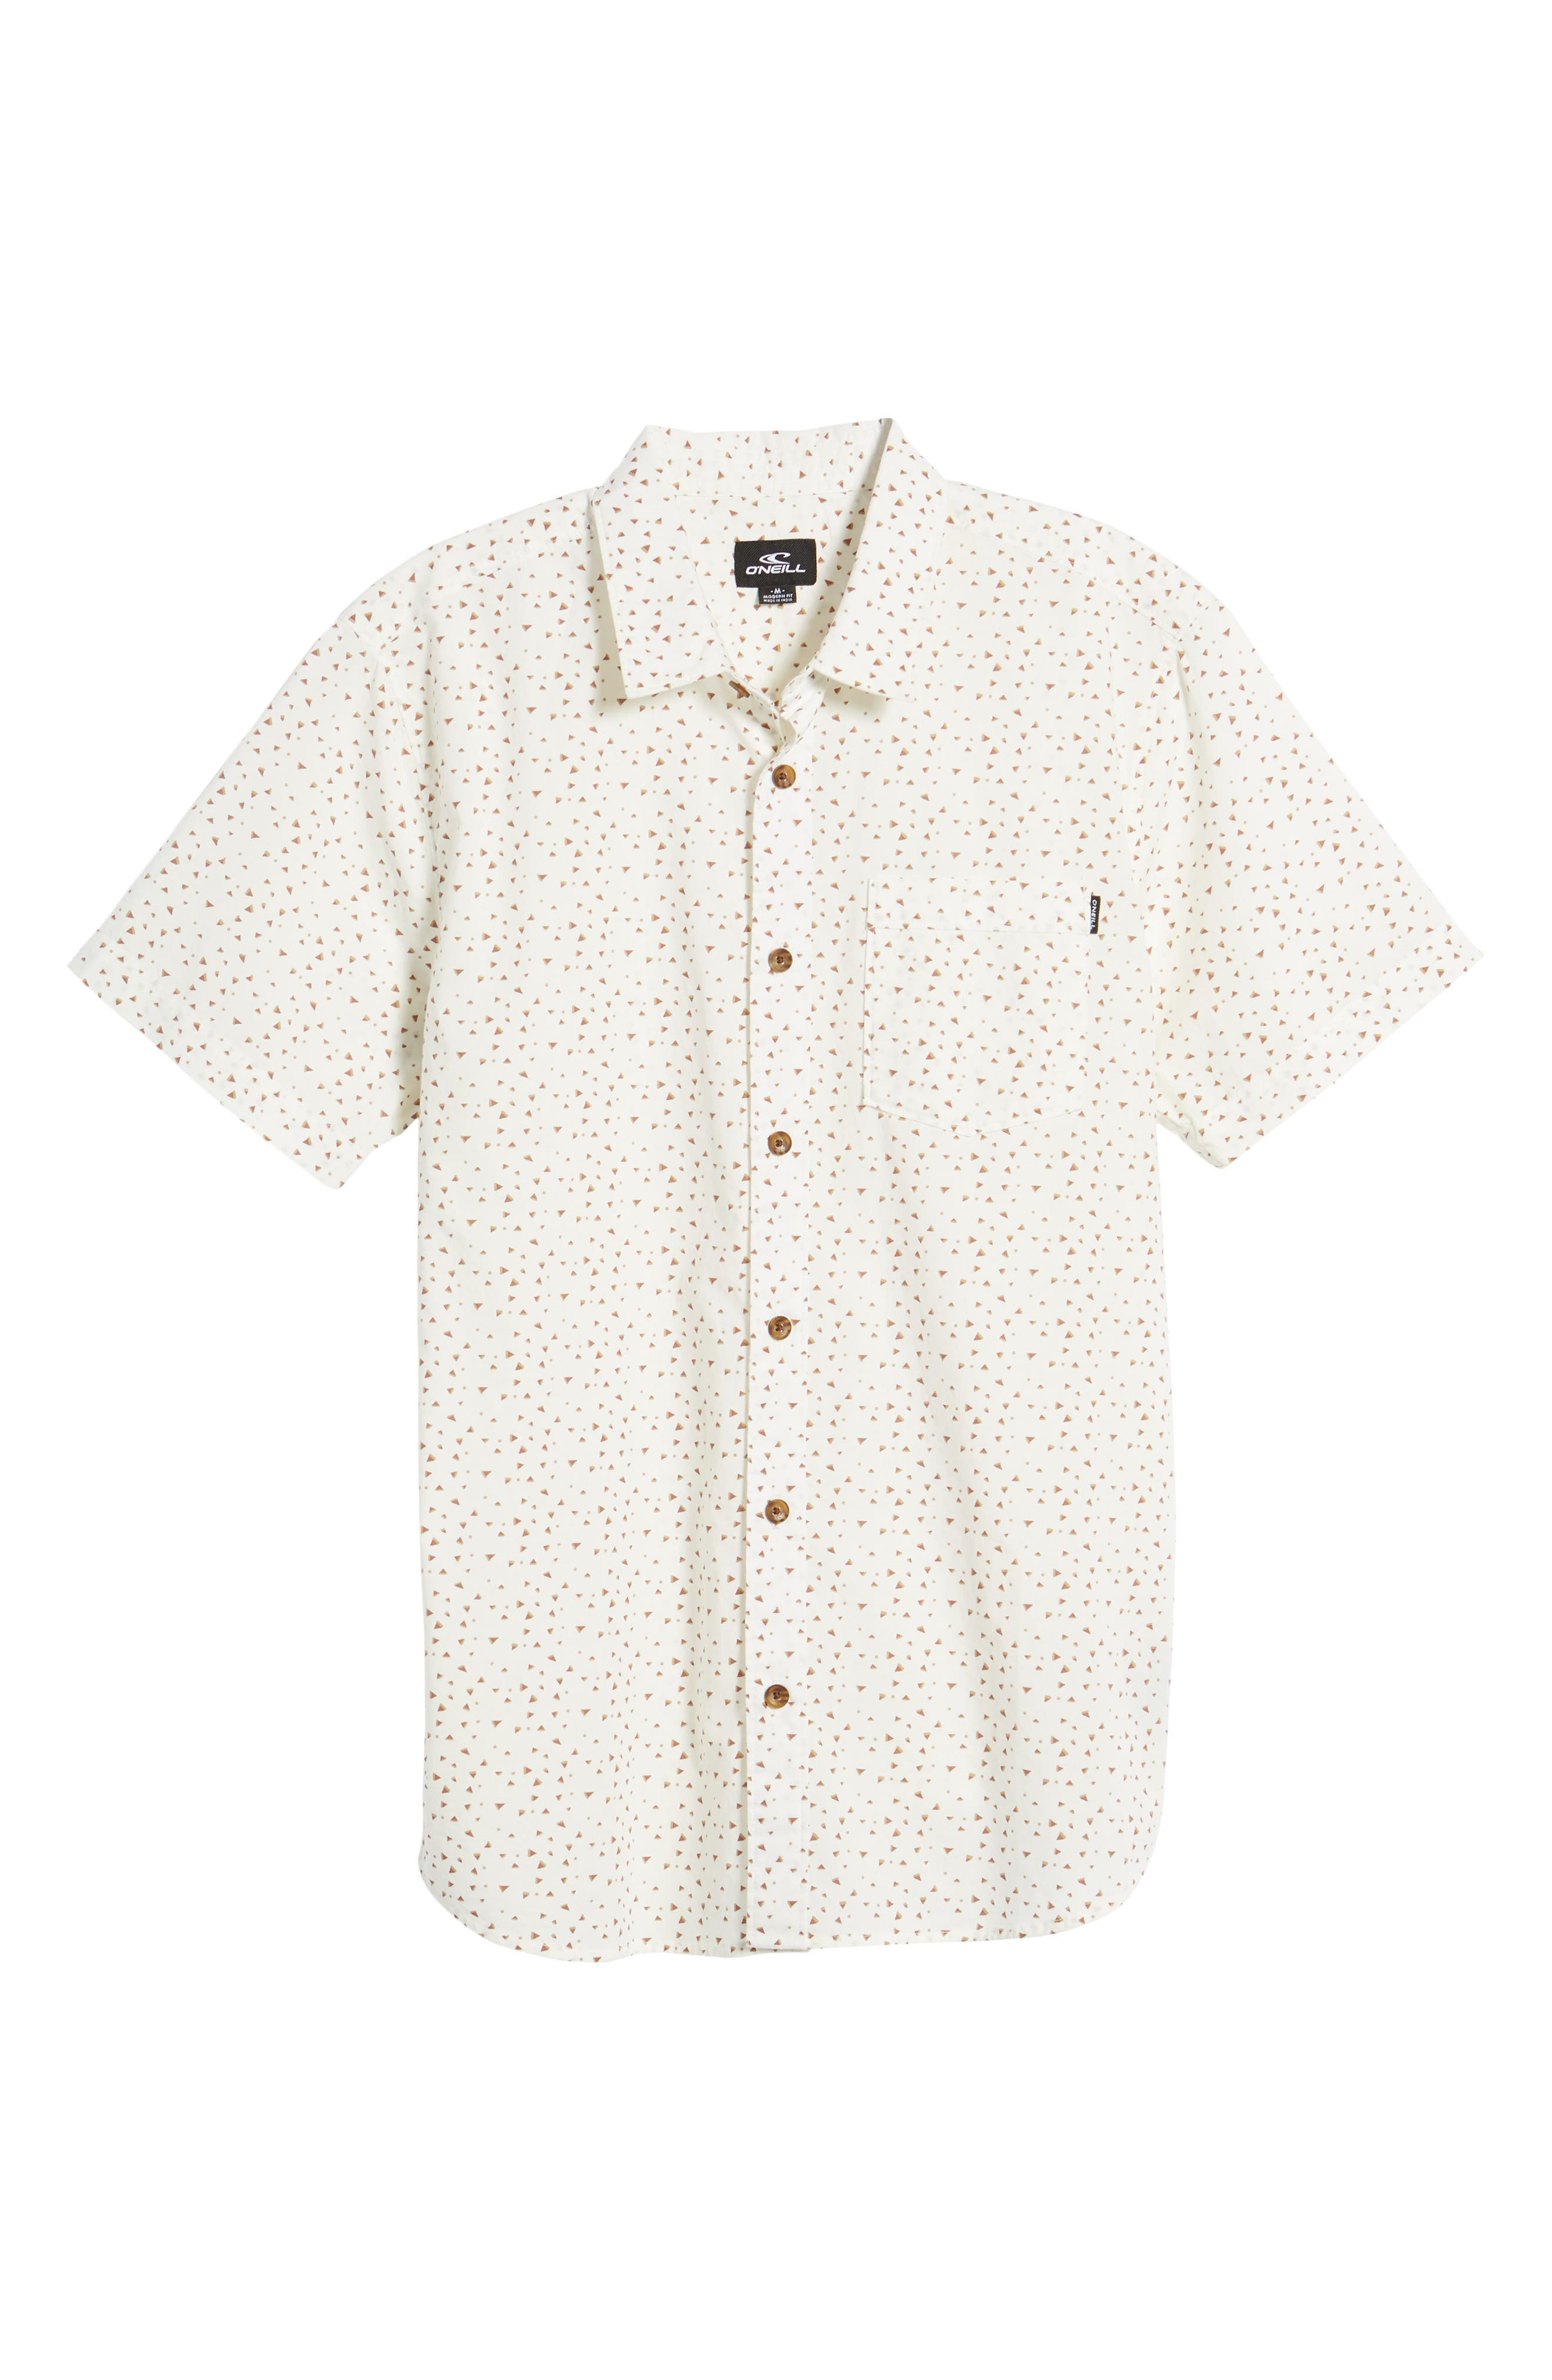 Rowdy Woven Shirt,                             Alternate thumbnail 6, color,                             100